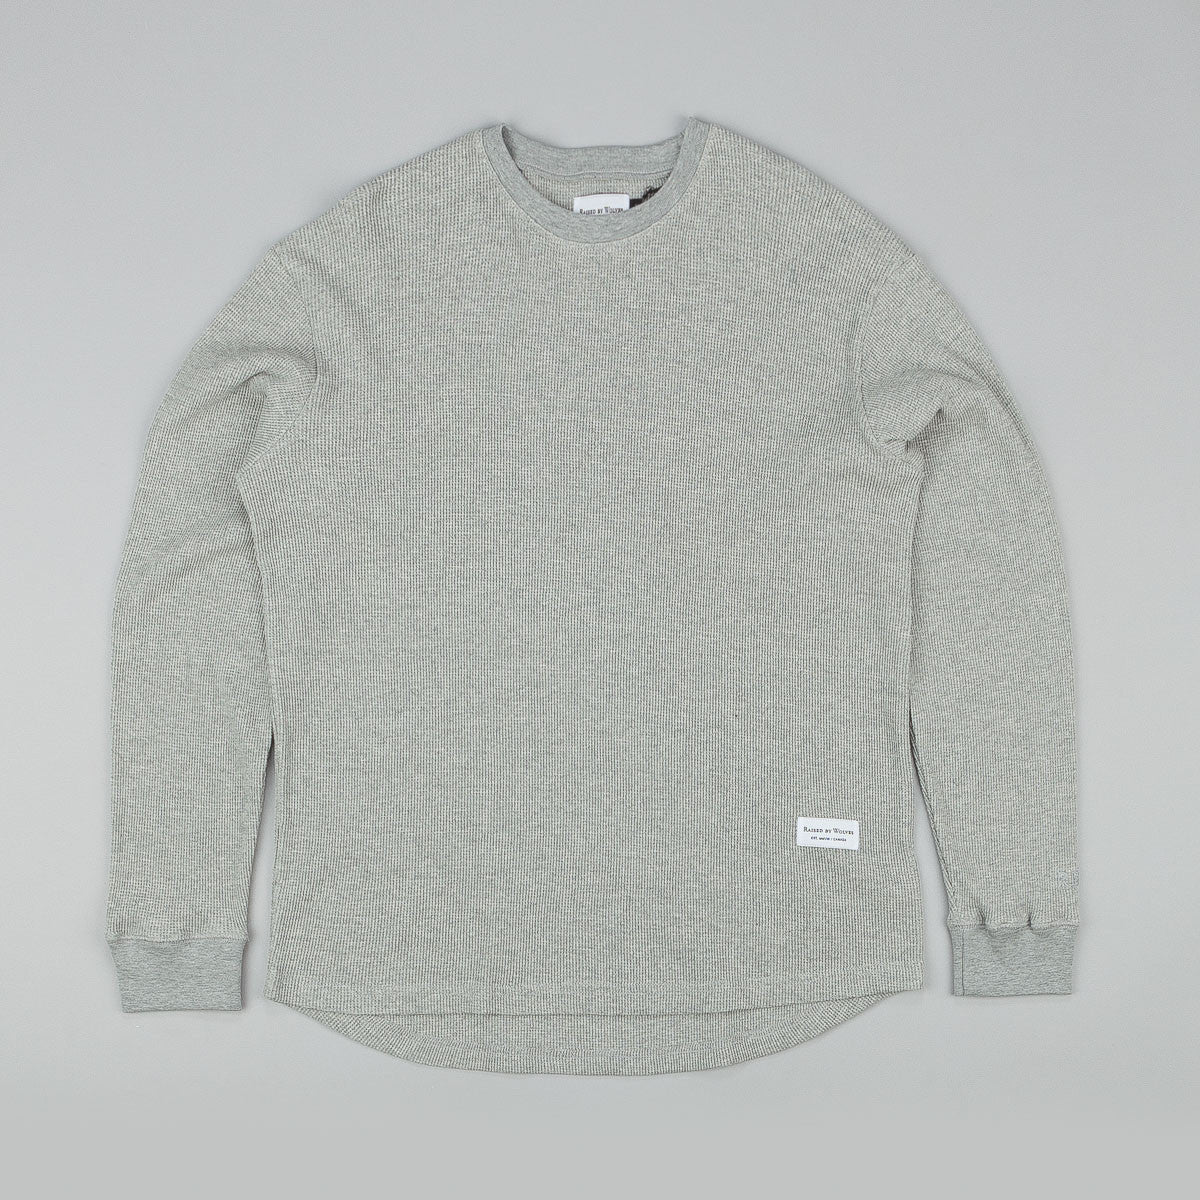 Raised By Wolves Jasper Thermal Shirt - Grey